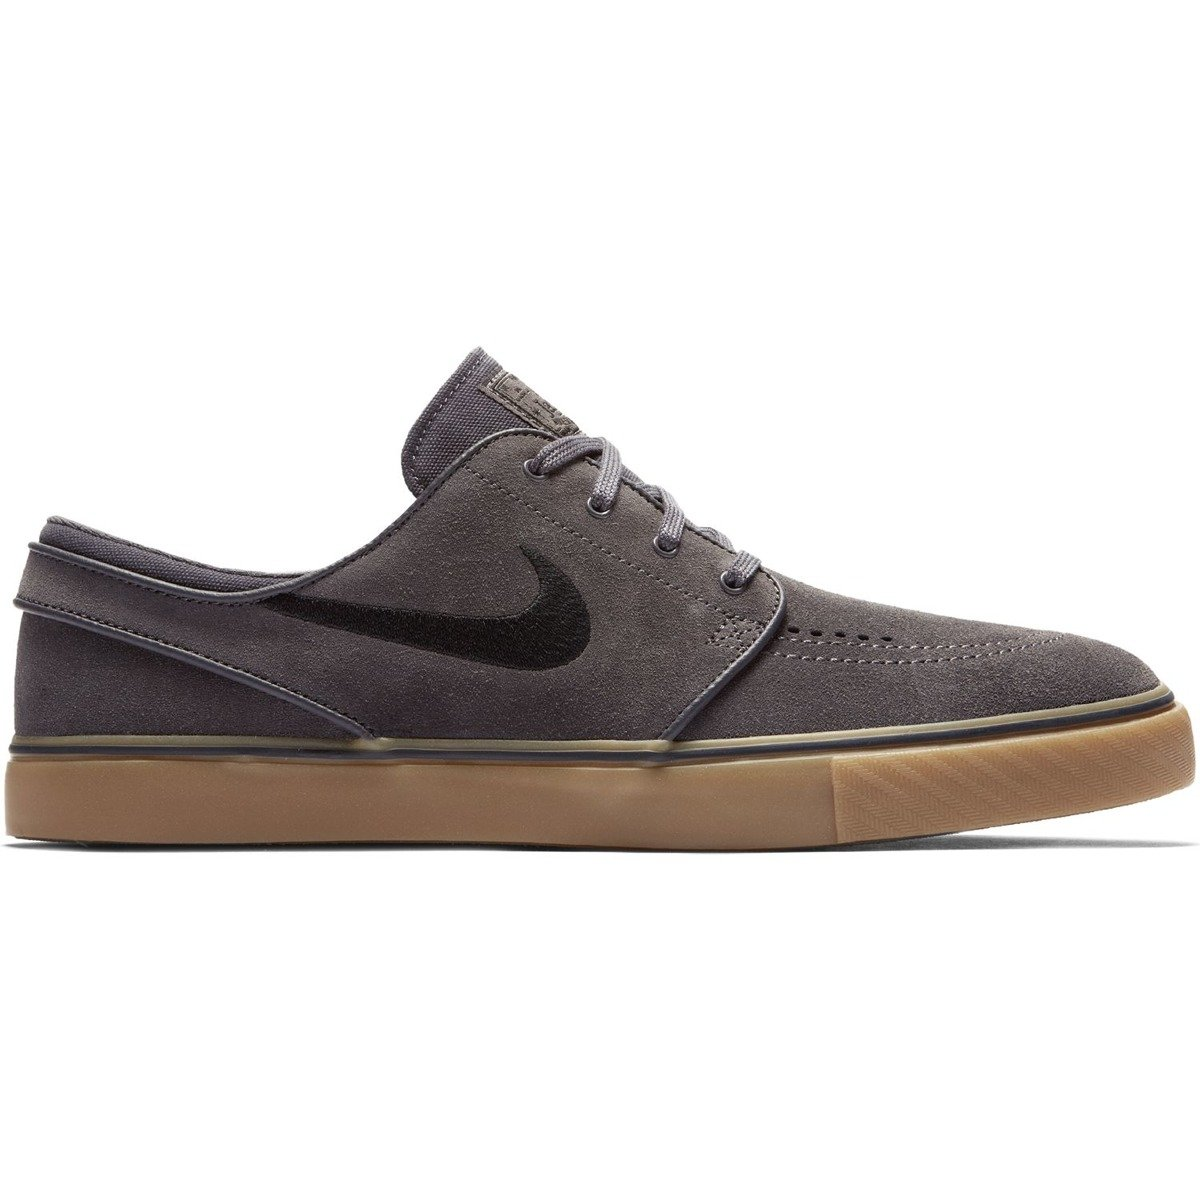 premium selection 77d37 d3336 nike sb zoom stefan janoski thunder grey black-gum light brown Click to zoom  ...